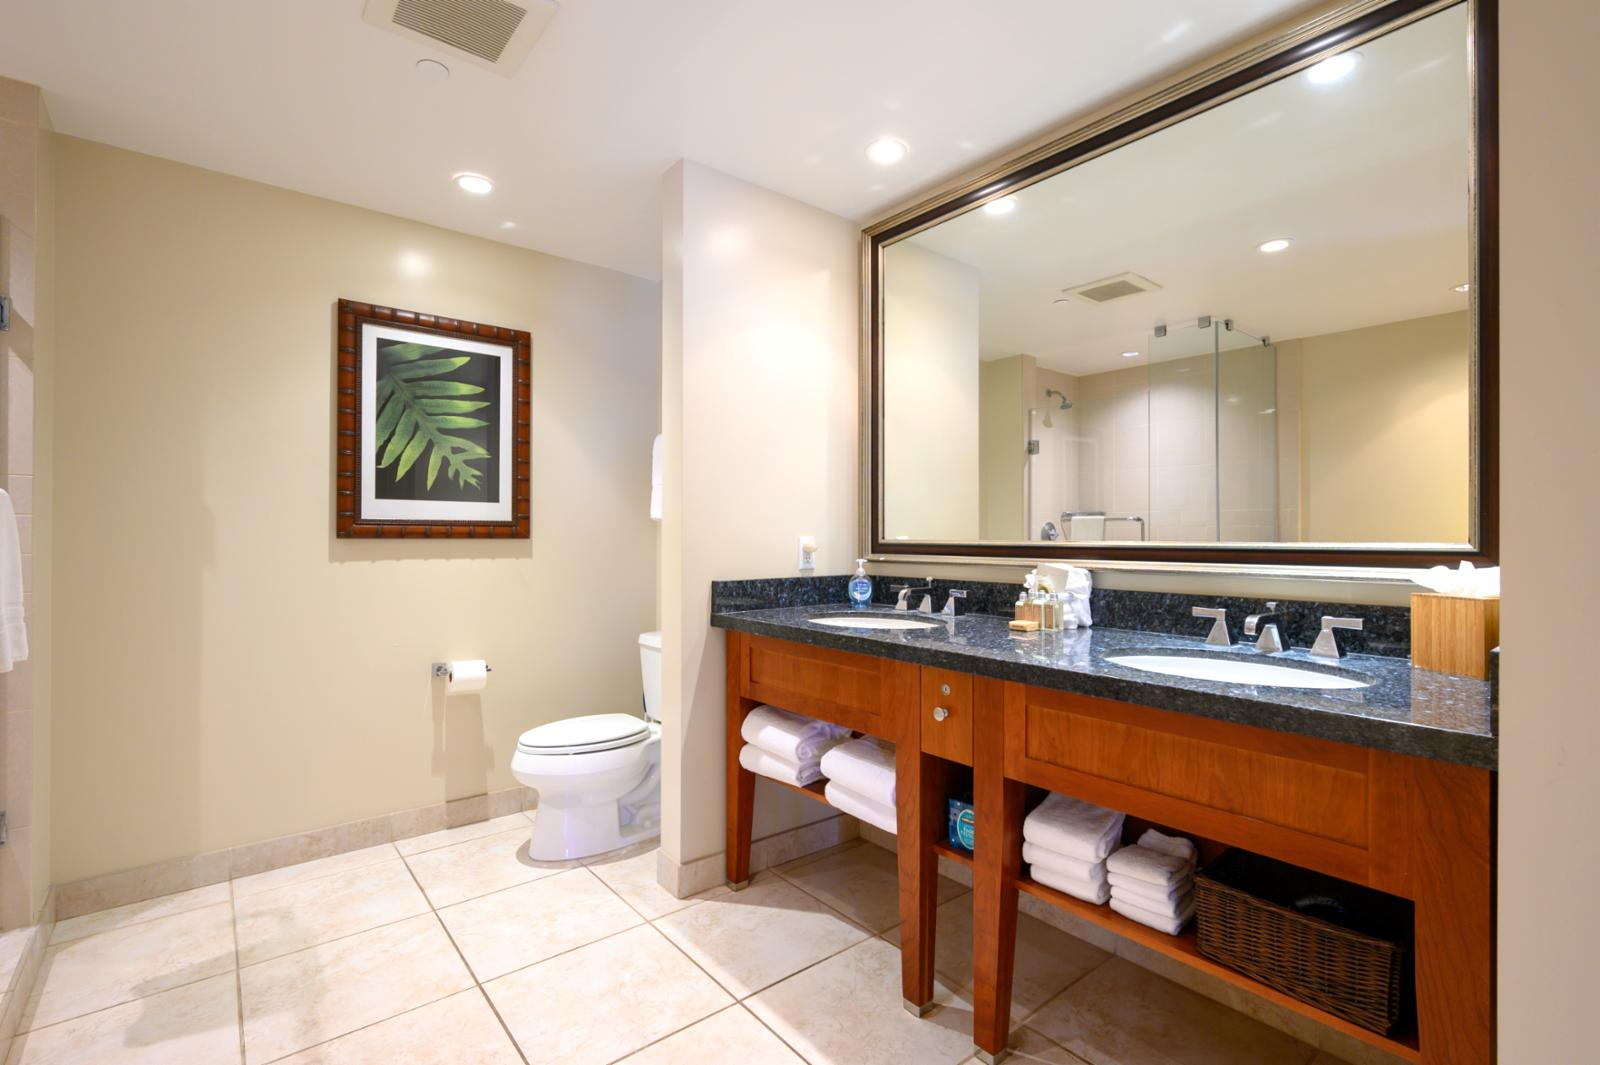 Spacious master bath with double sinks